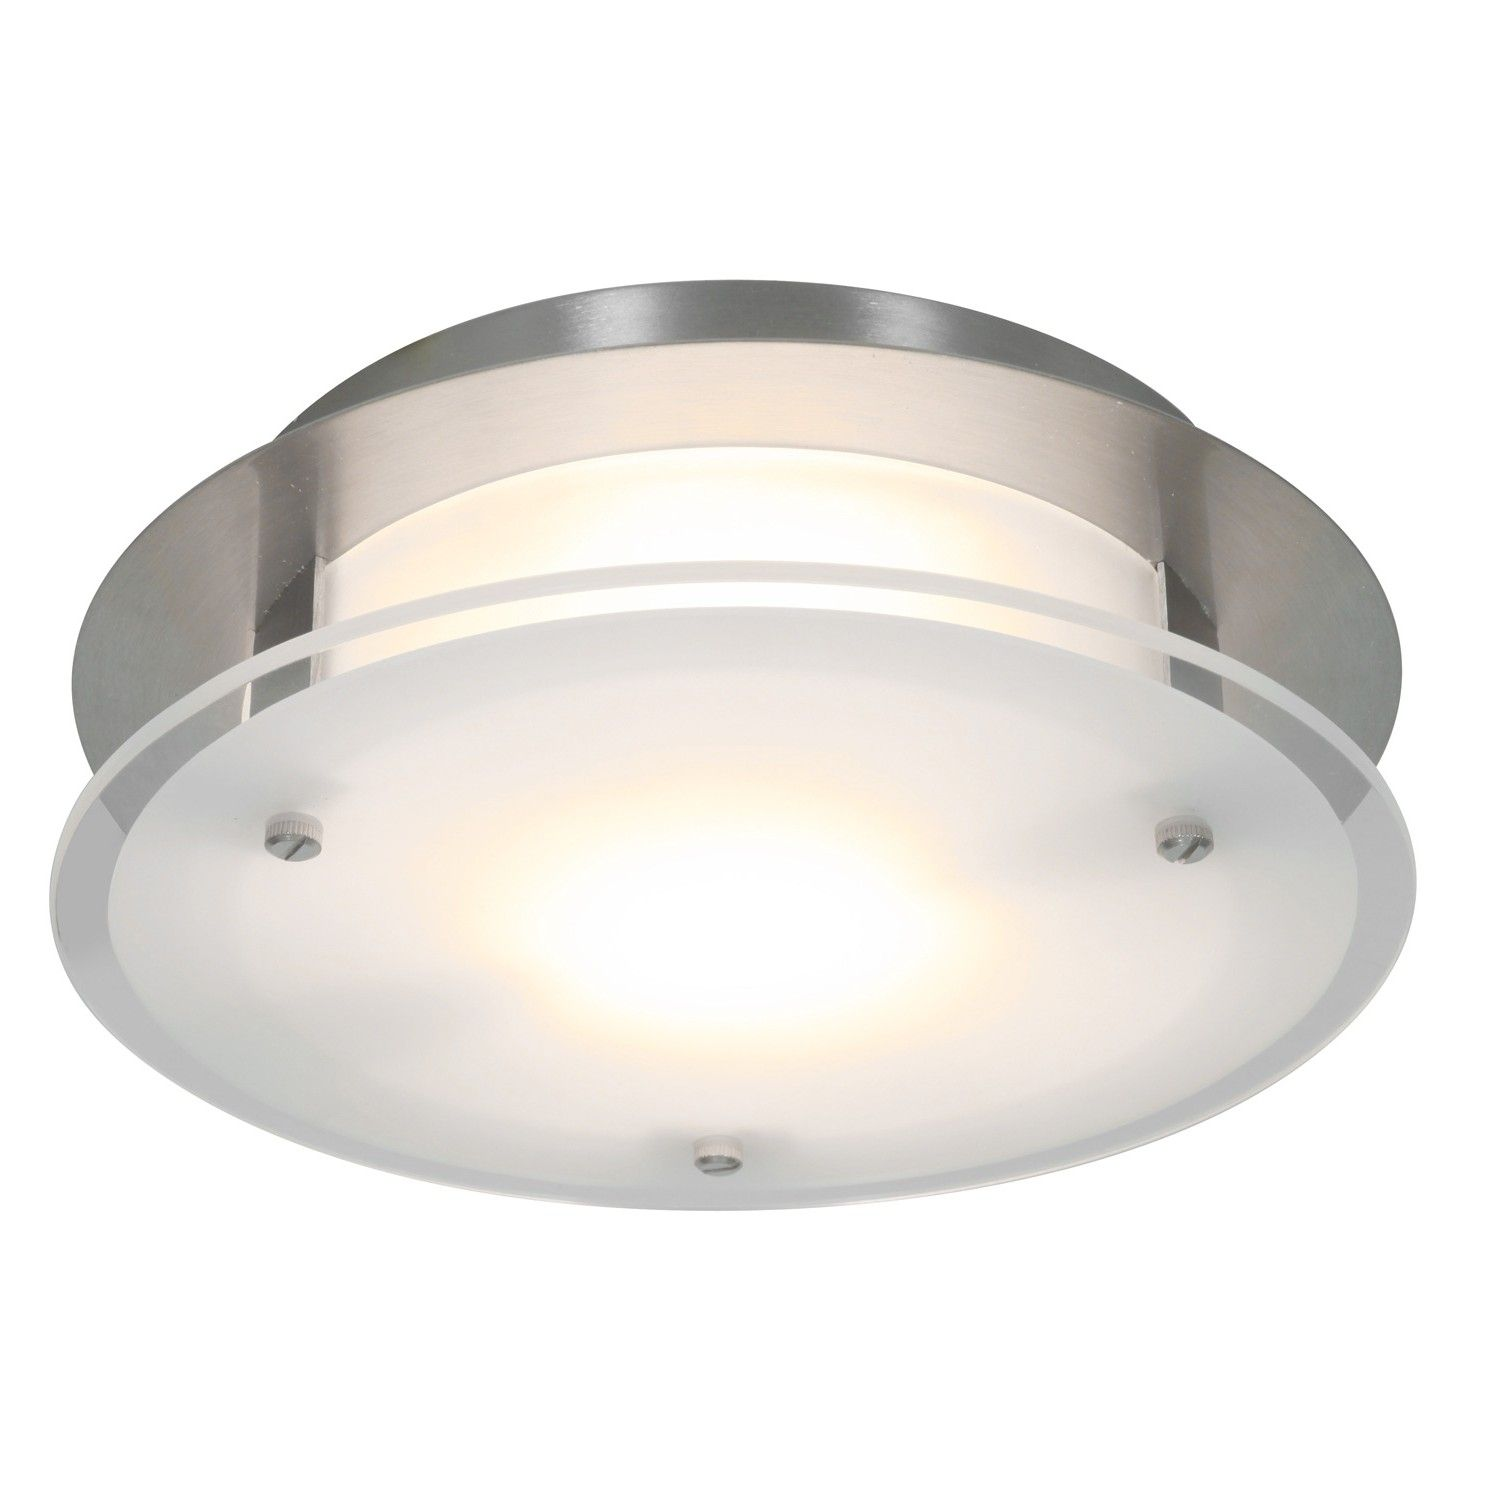 Luxury Ductless Bathroom Fan With Light